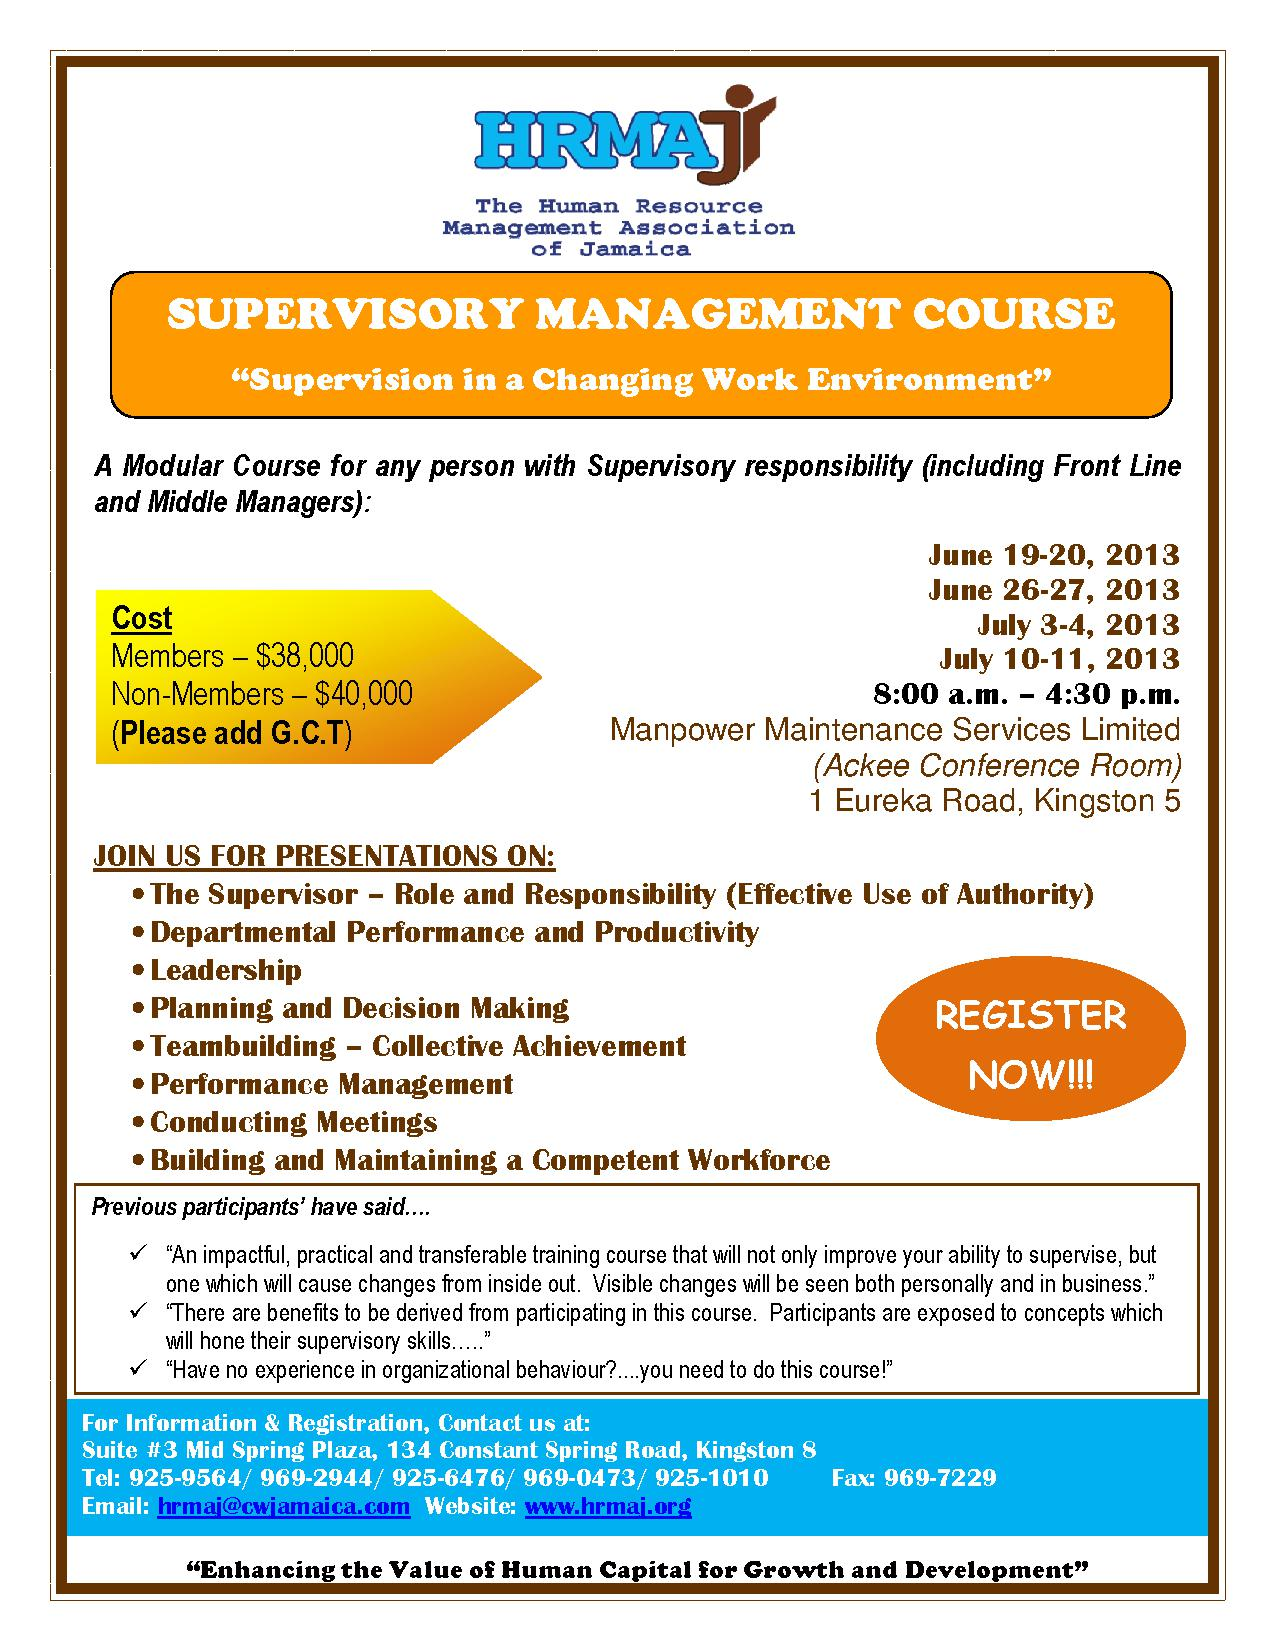 Supvisory Management Course